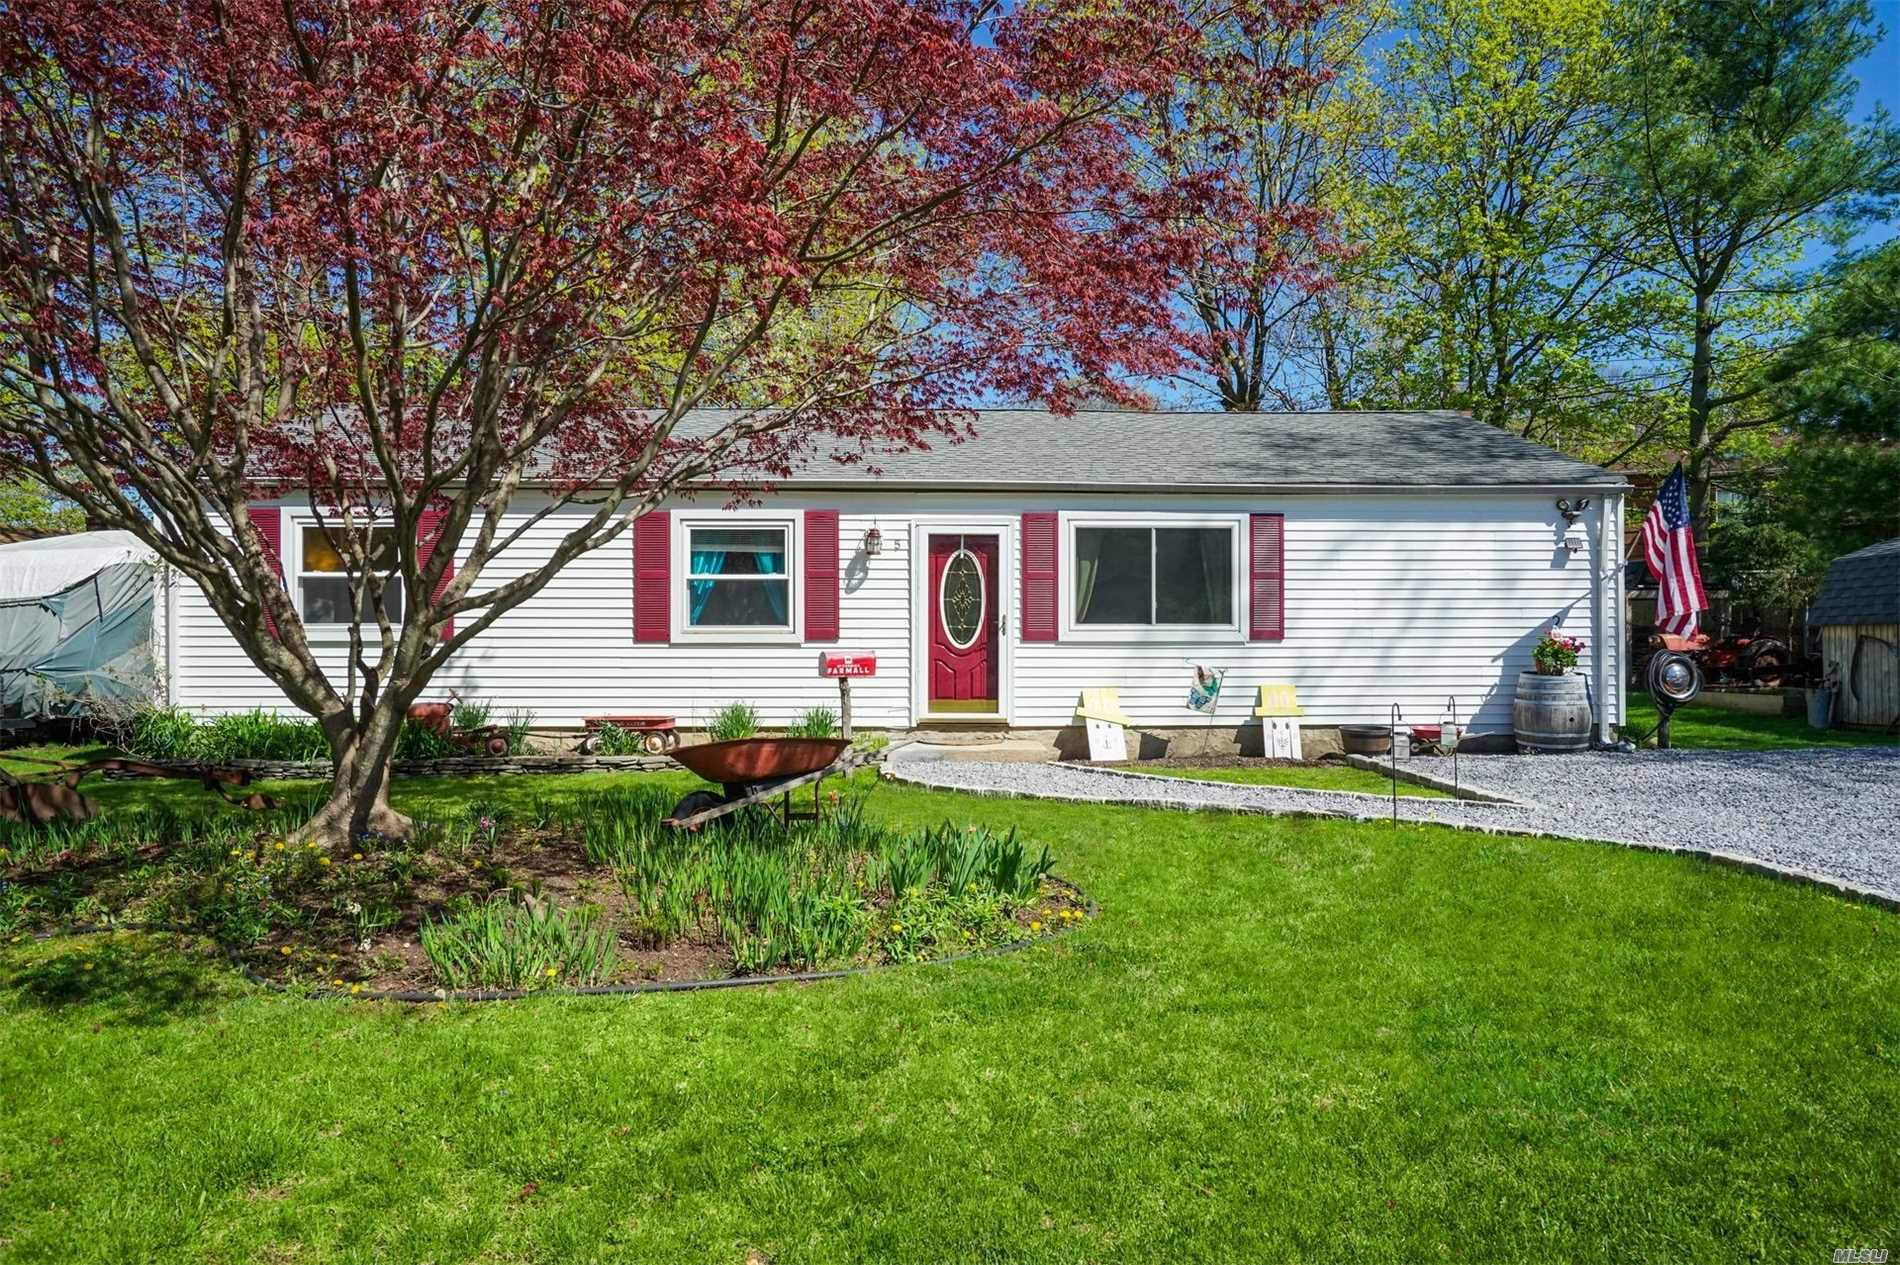 Great 3-4 Bedroom Ranch on Quiet Dead End. Living Room w/Pellet Stove, Bonus Room Could Be Office. Huge Deck, Private Backyard, In-Ground Sprinklers, New Blue Stone Driveway. Well Maintained.